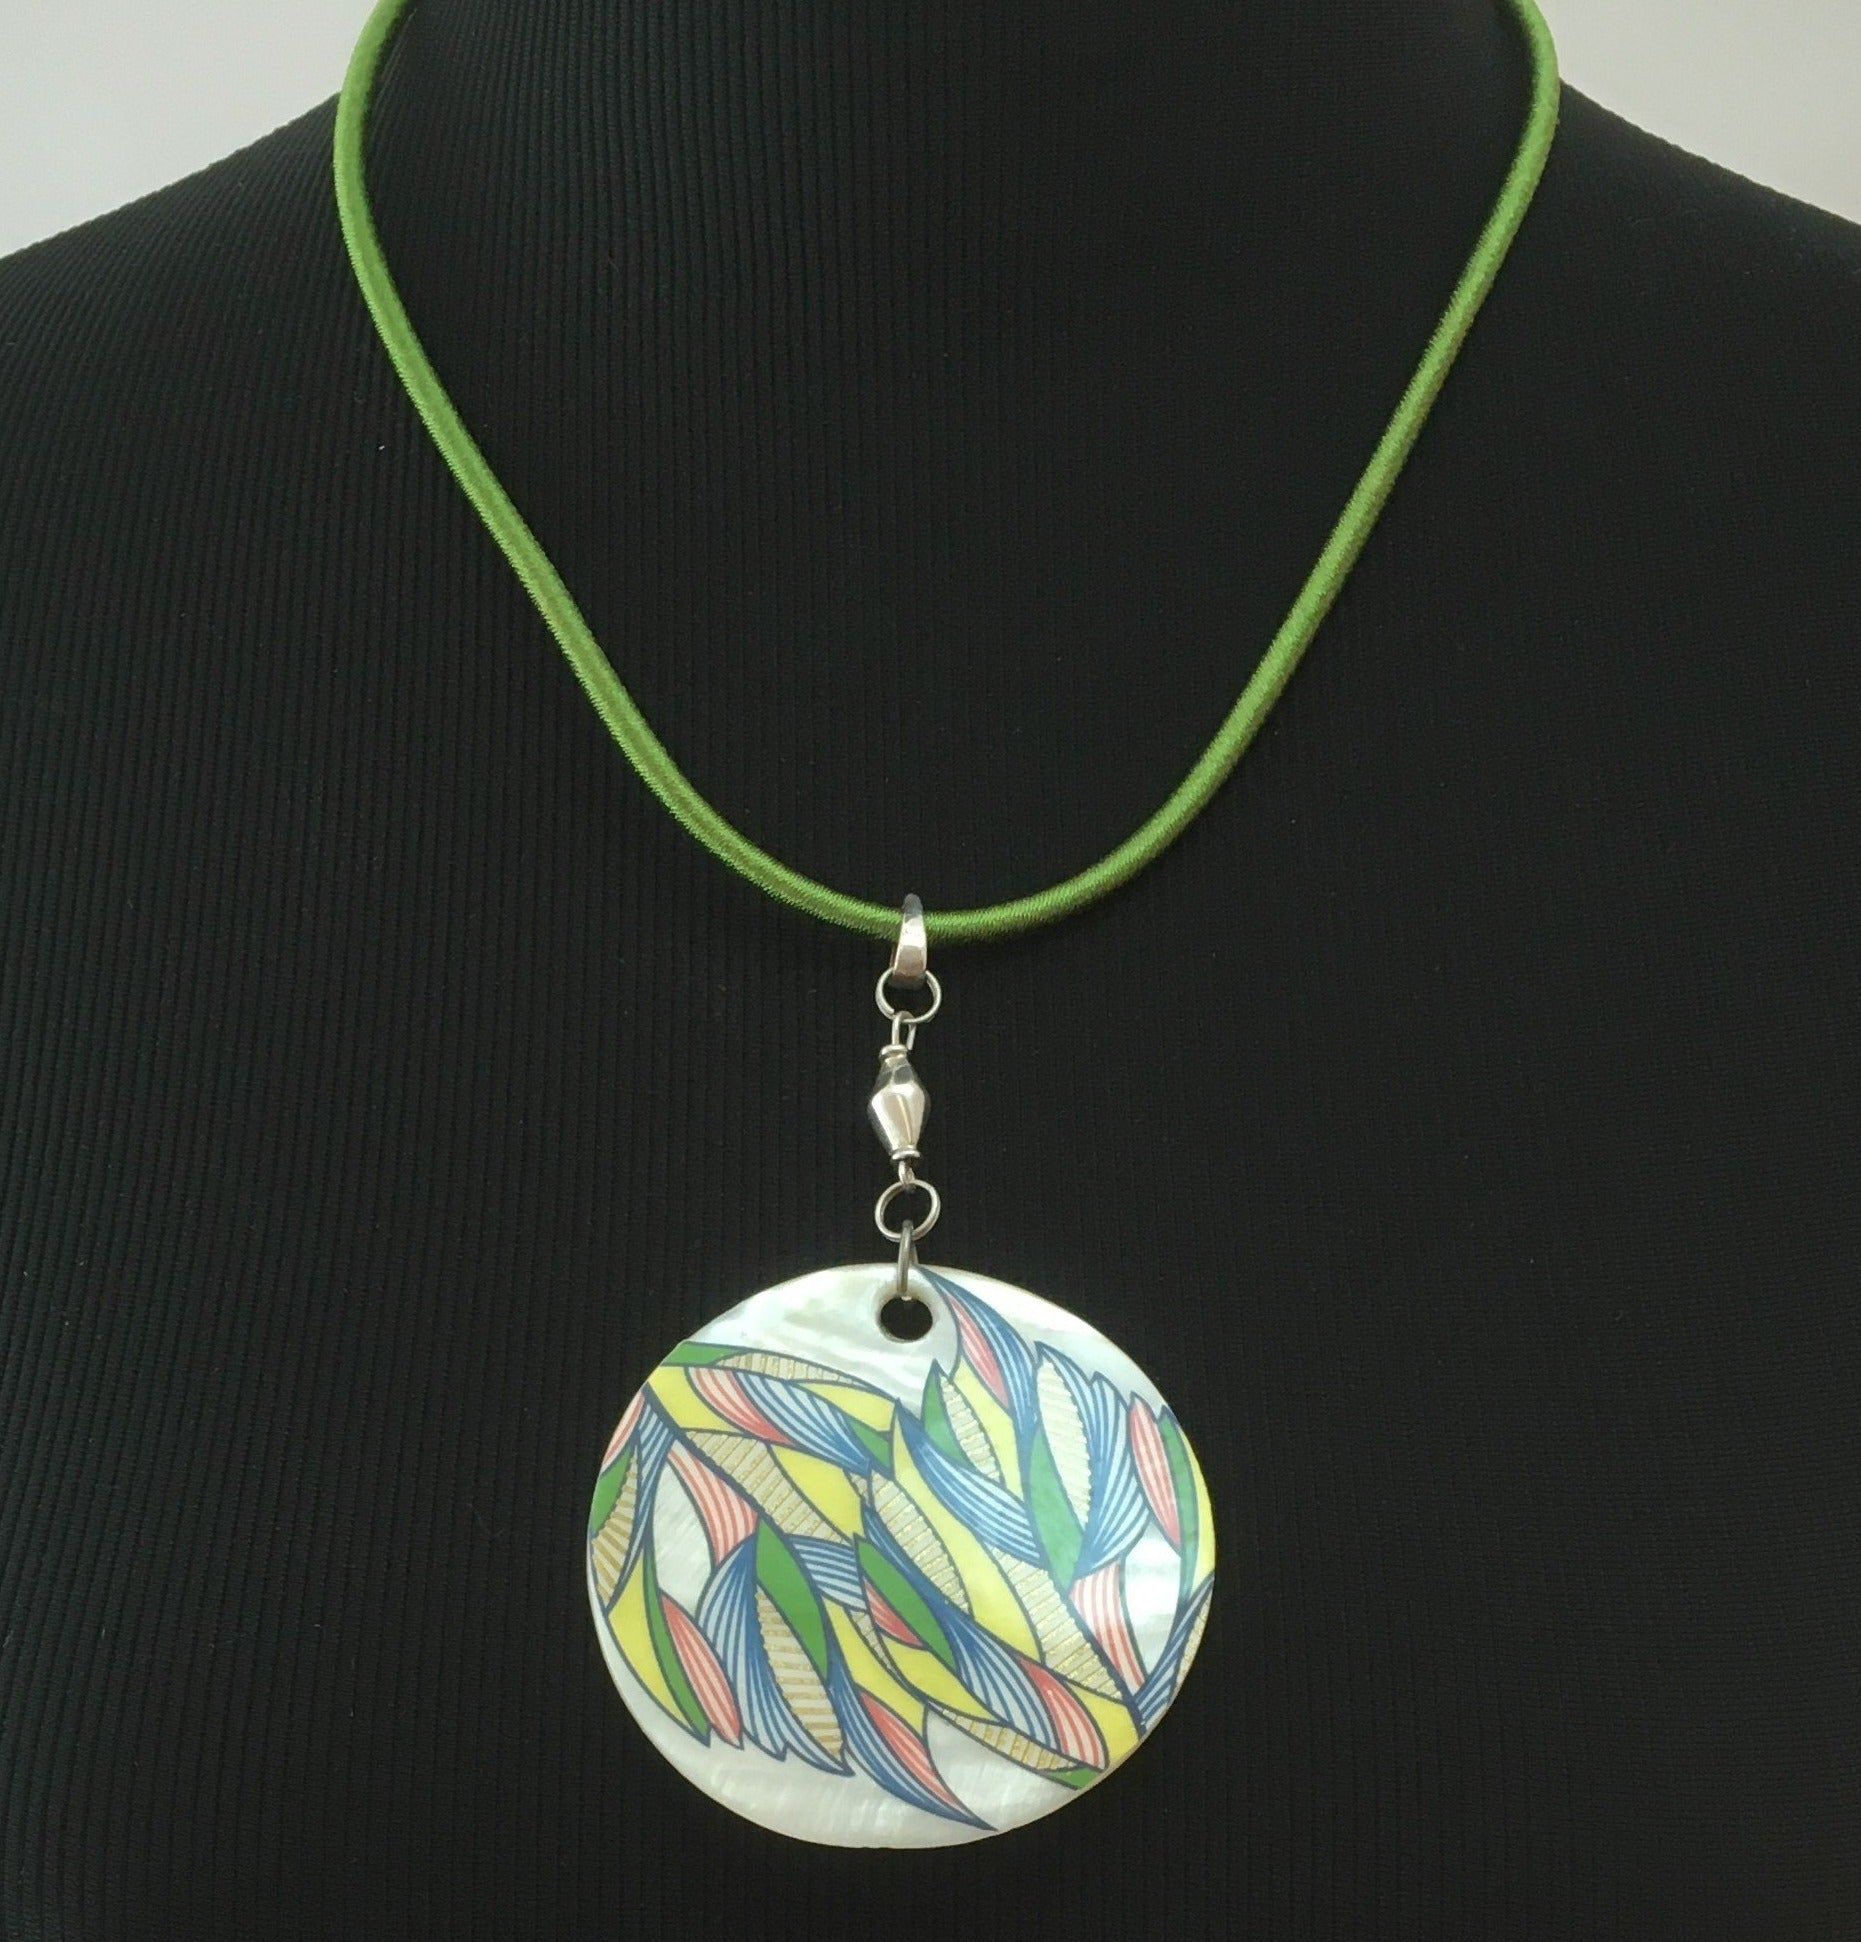 Decoupage pendant by Marlies Benjamin